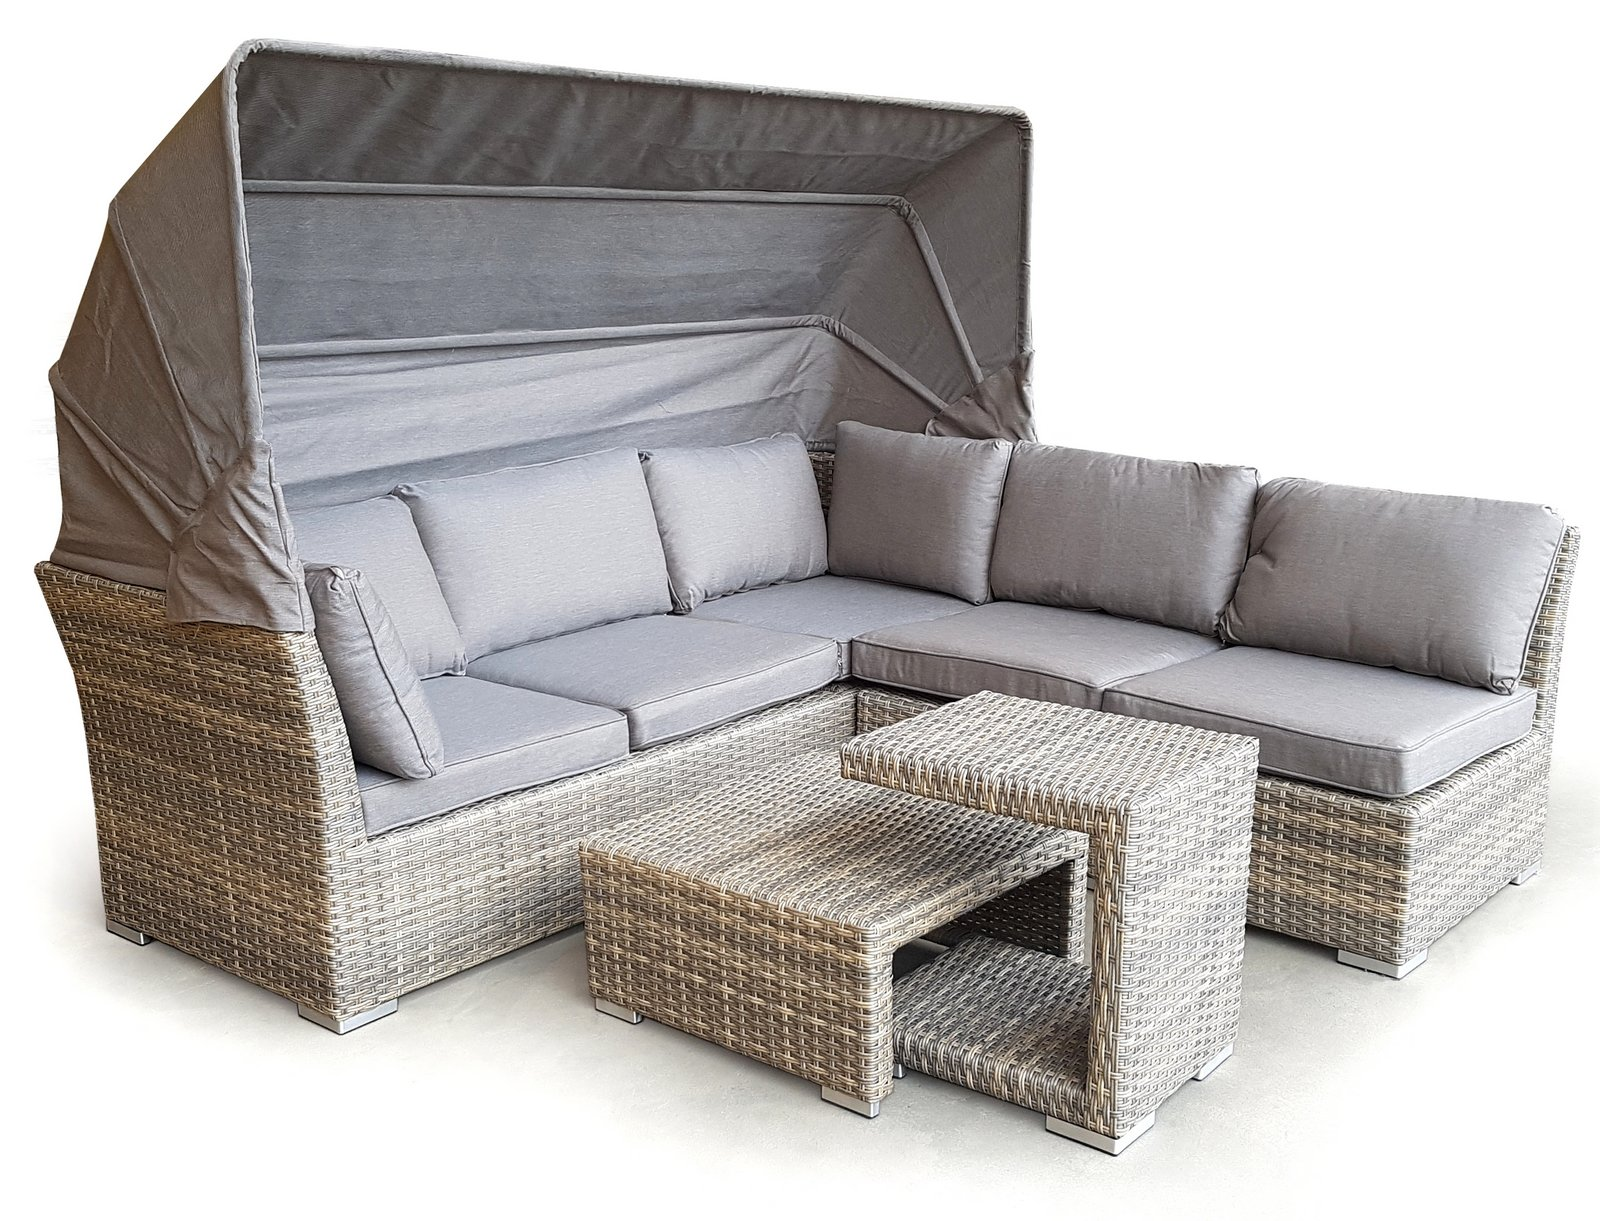 osoltus gartenlounge cabrio lounge strandkorb palma mit dach ebay. Black Bedroom Furniture Sets. Home Design Ideas